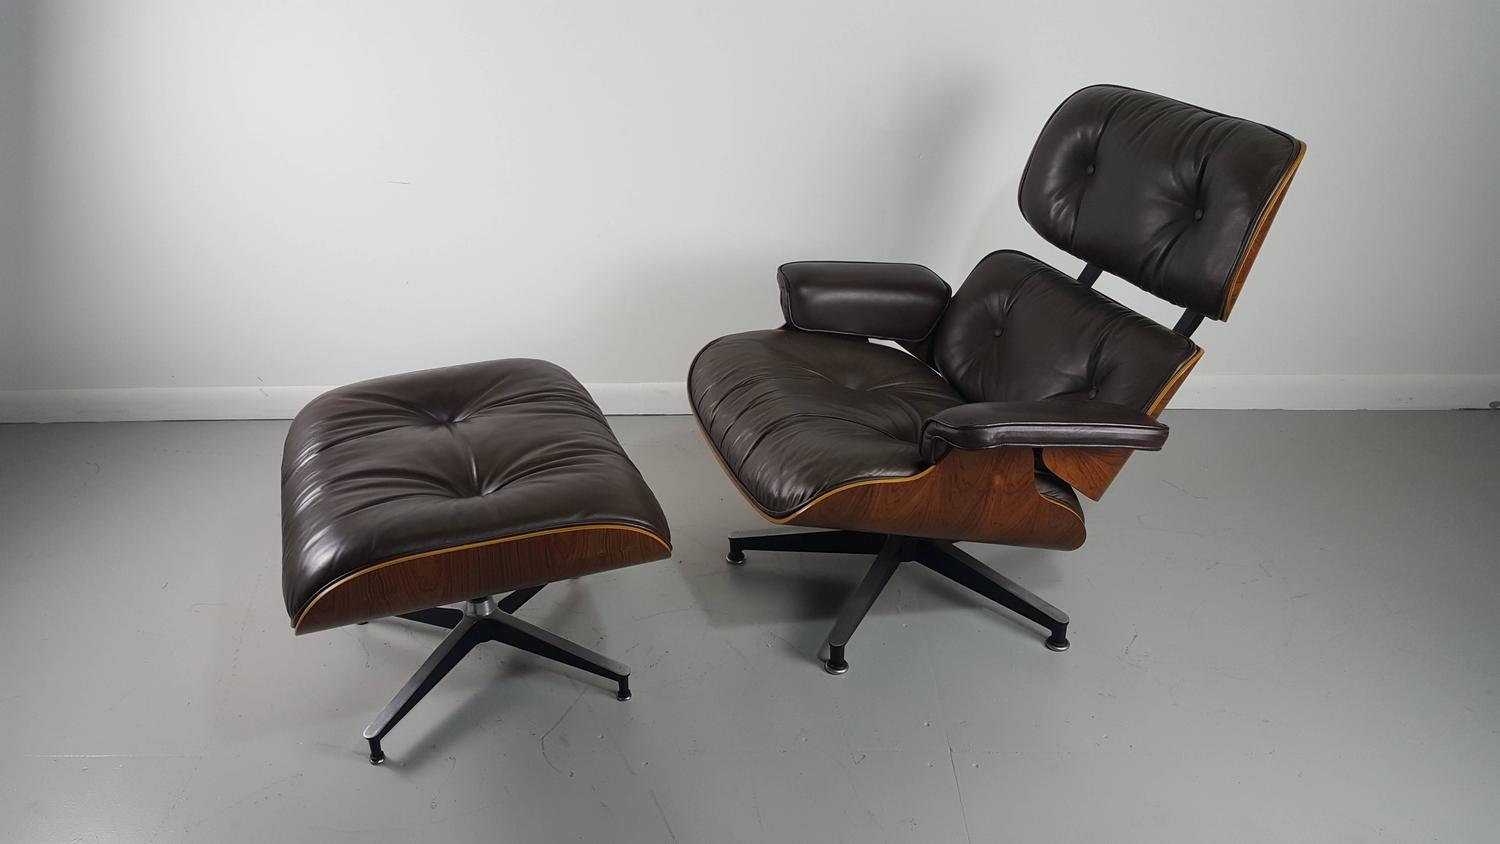 Iconic Eames Lounge Chair And Ottoman In Brown Leather And Rosewood At 1stdibs